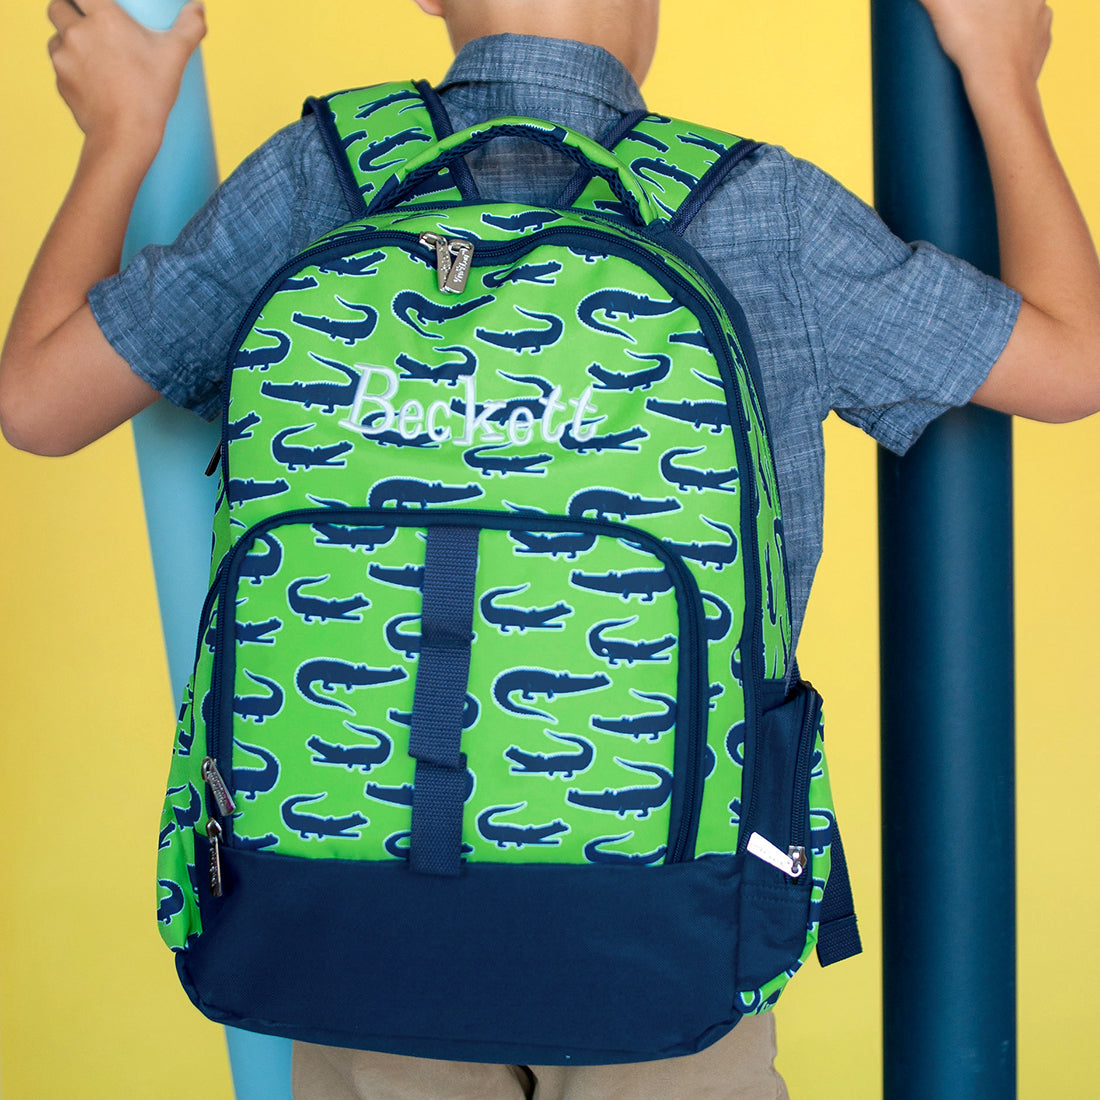 Later Gator Backpack